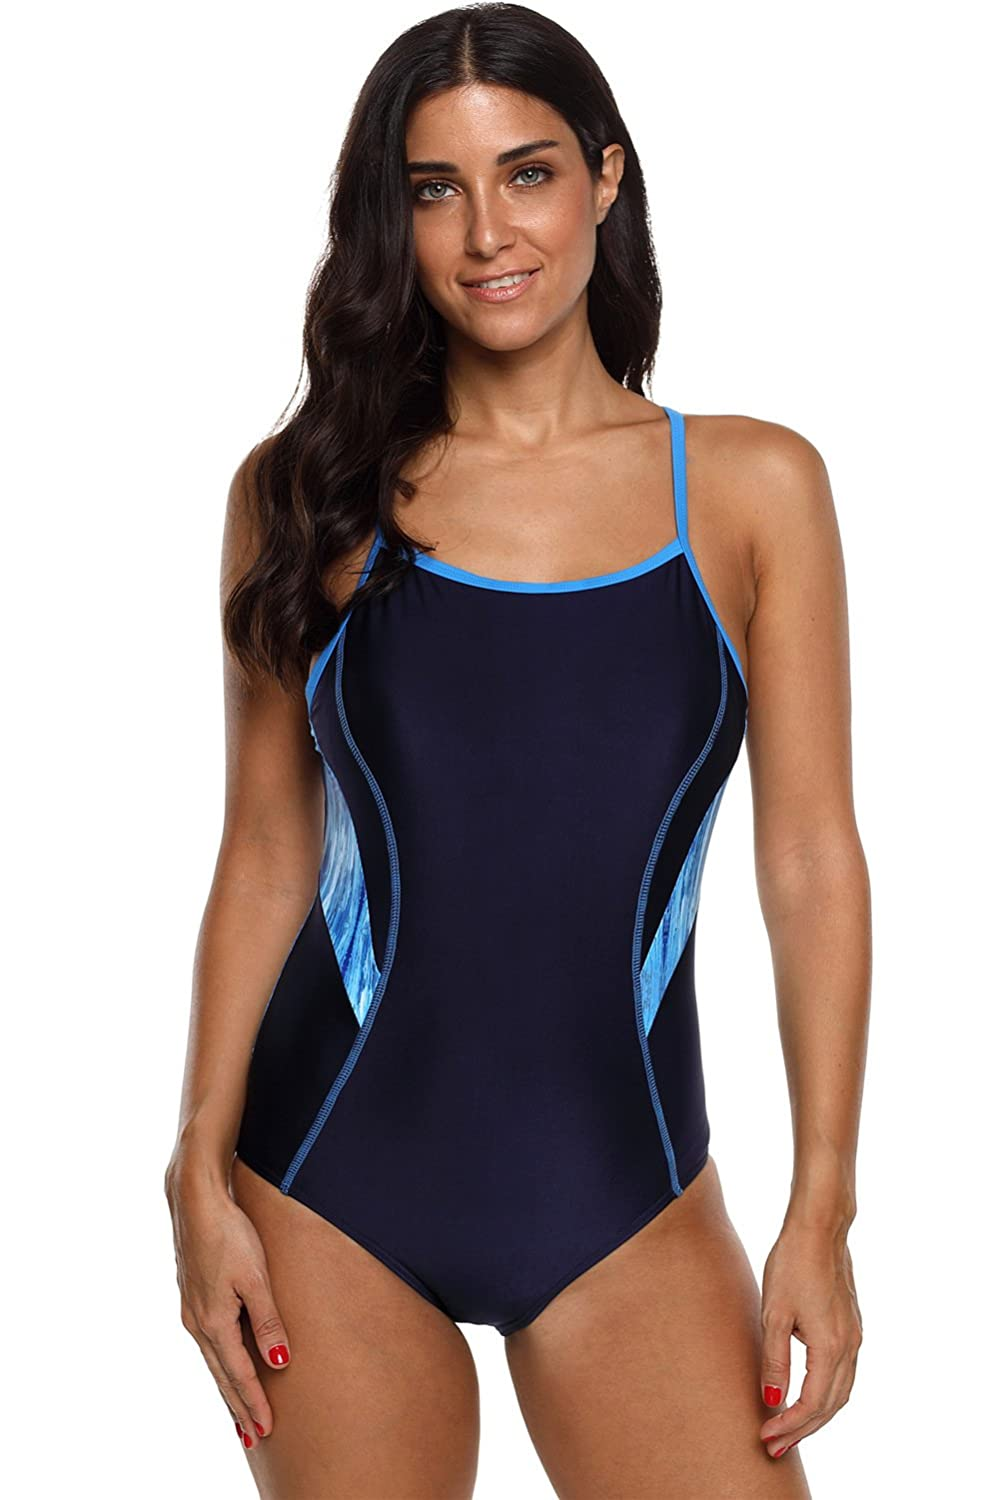 maysoul Women Sport One Piece Swimsuits Racerback Competitive Bathing Suits